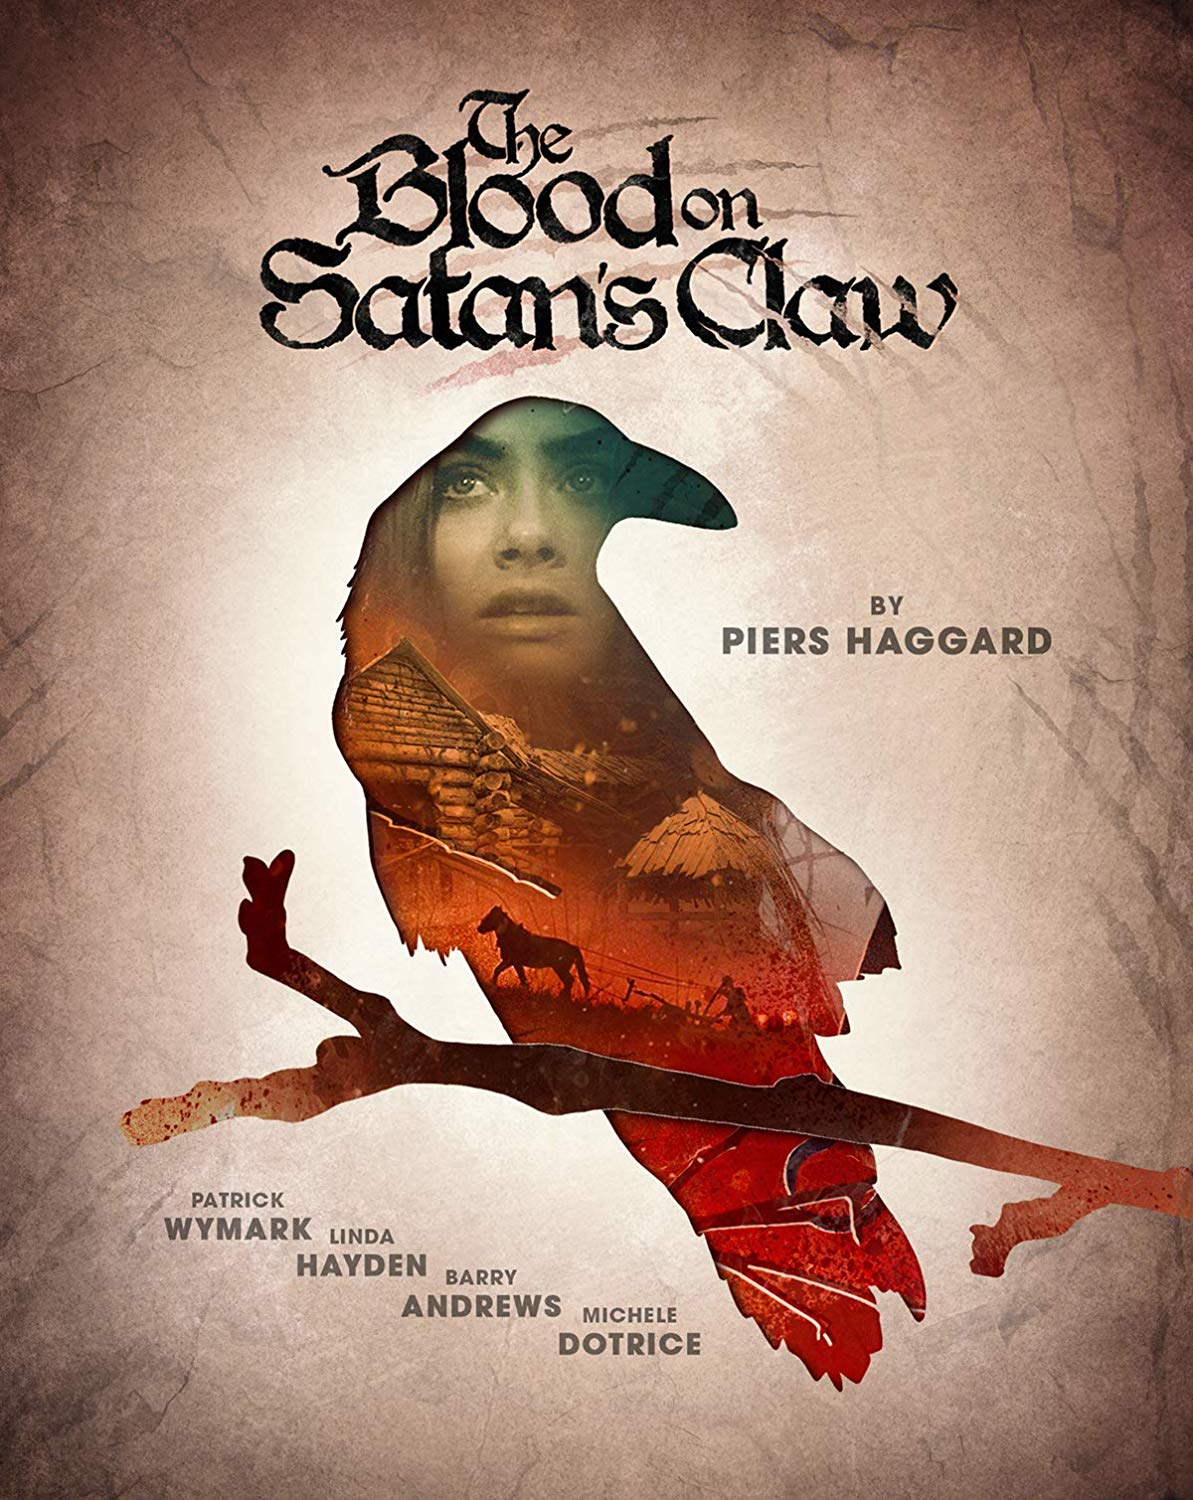 Blood on Satan's Claw Limited Edition Cover 1